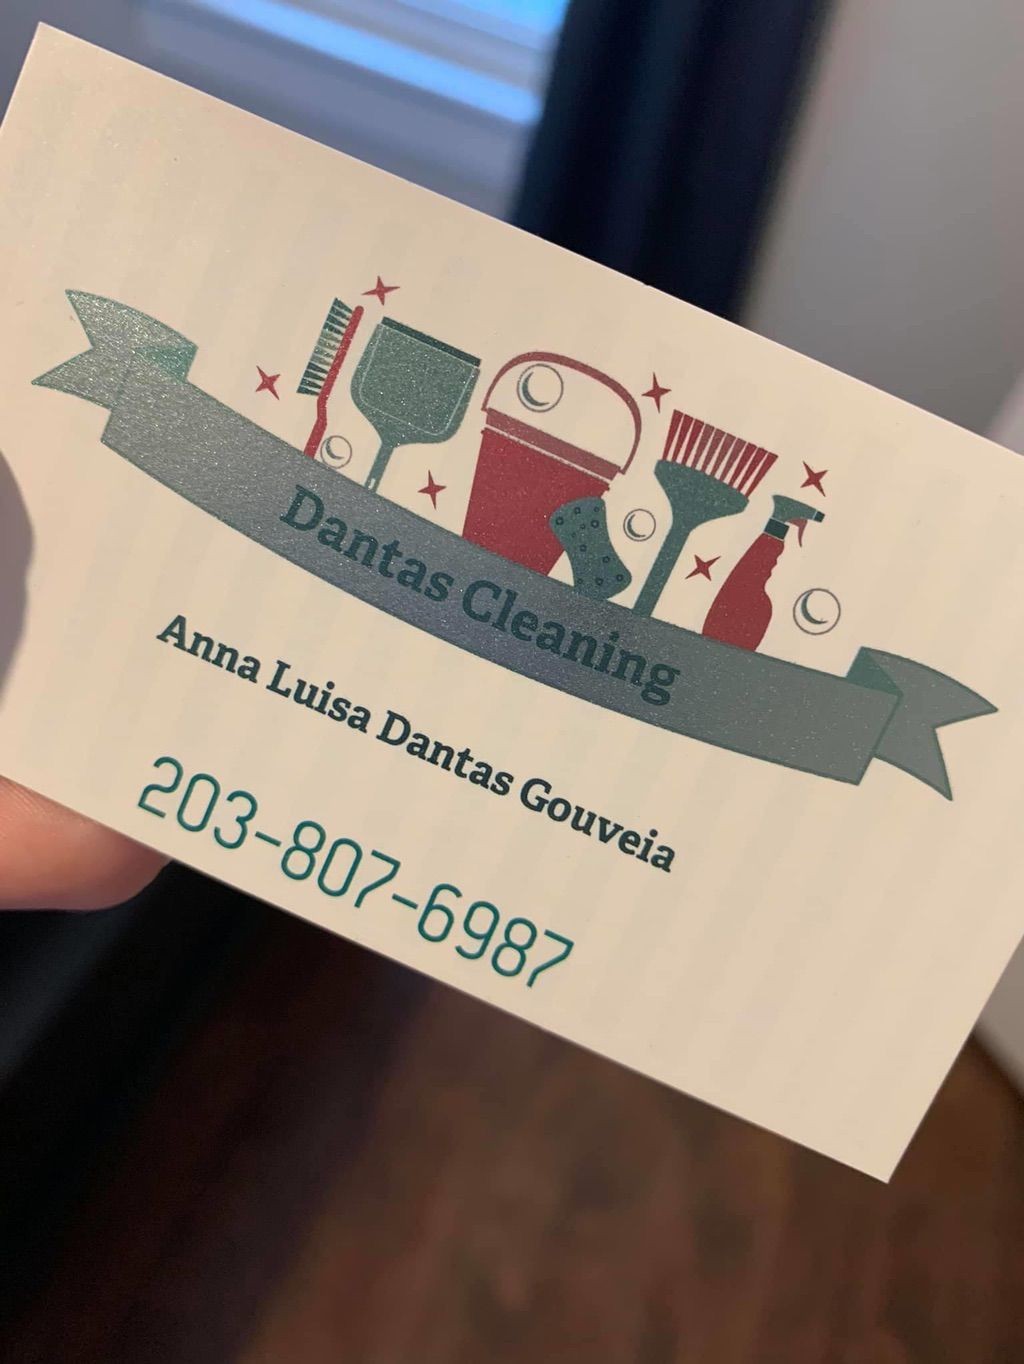 Dantas Cleaning Services